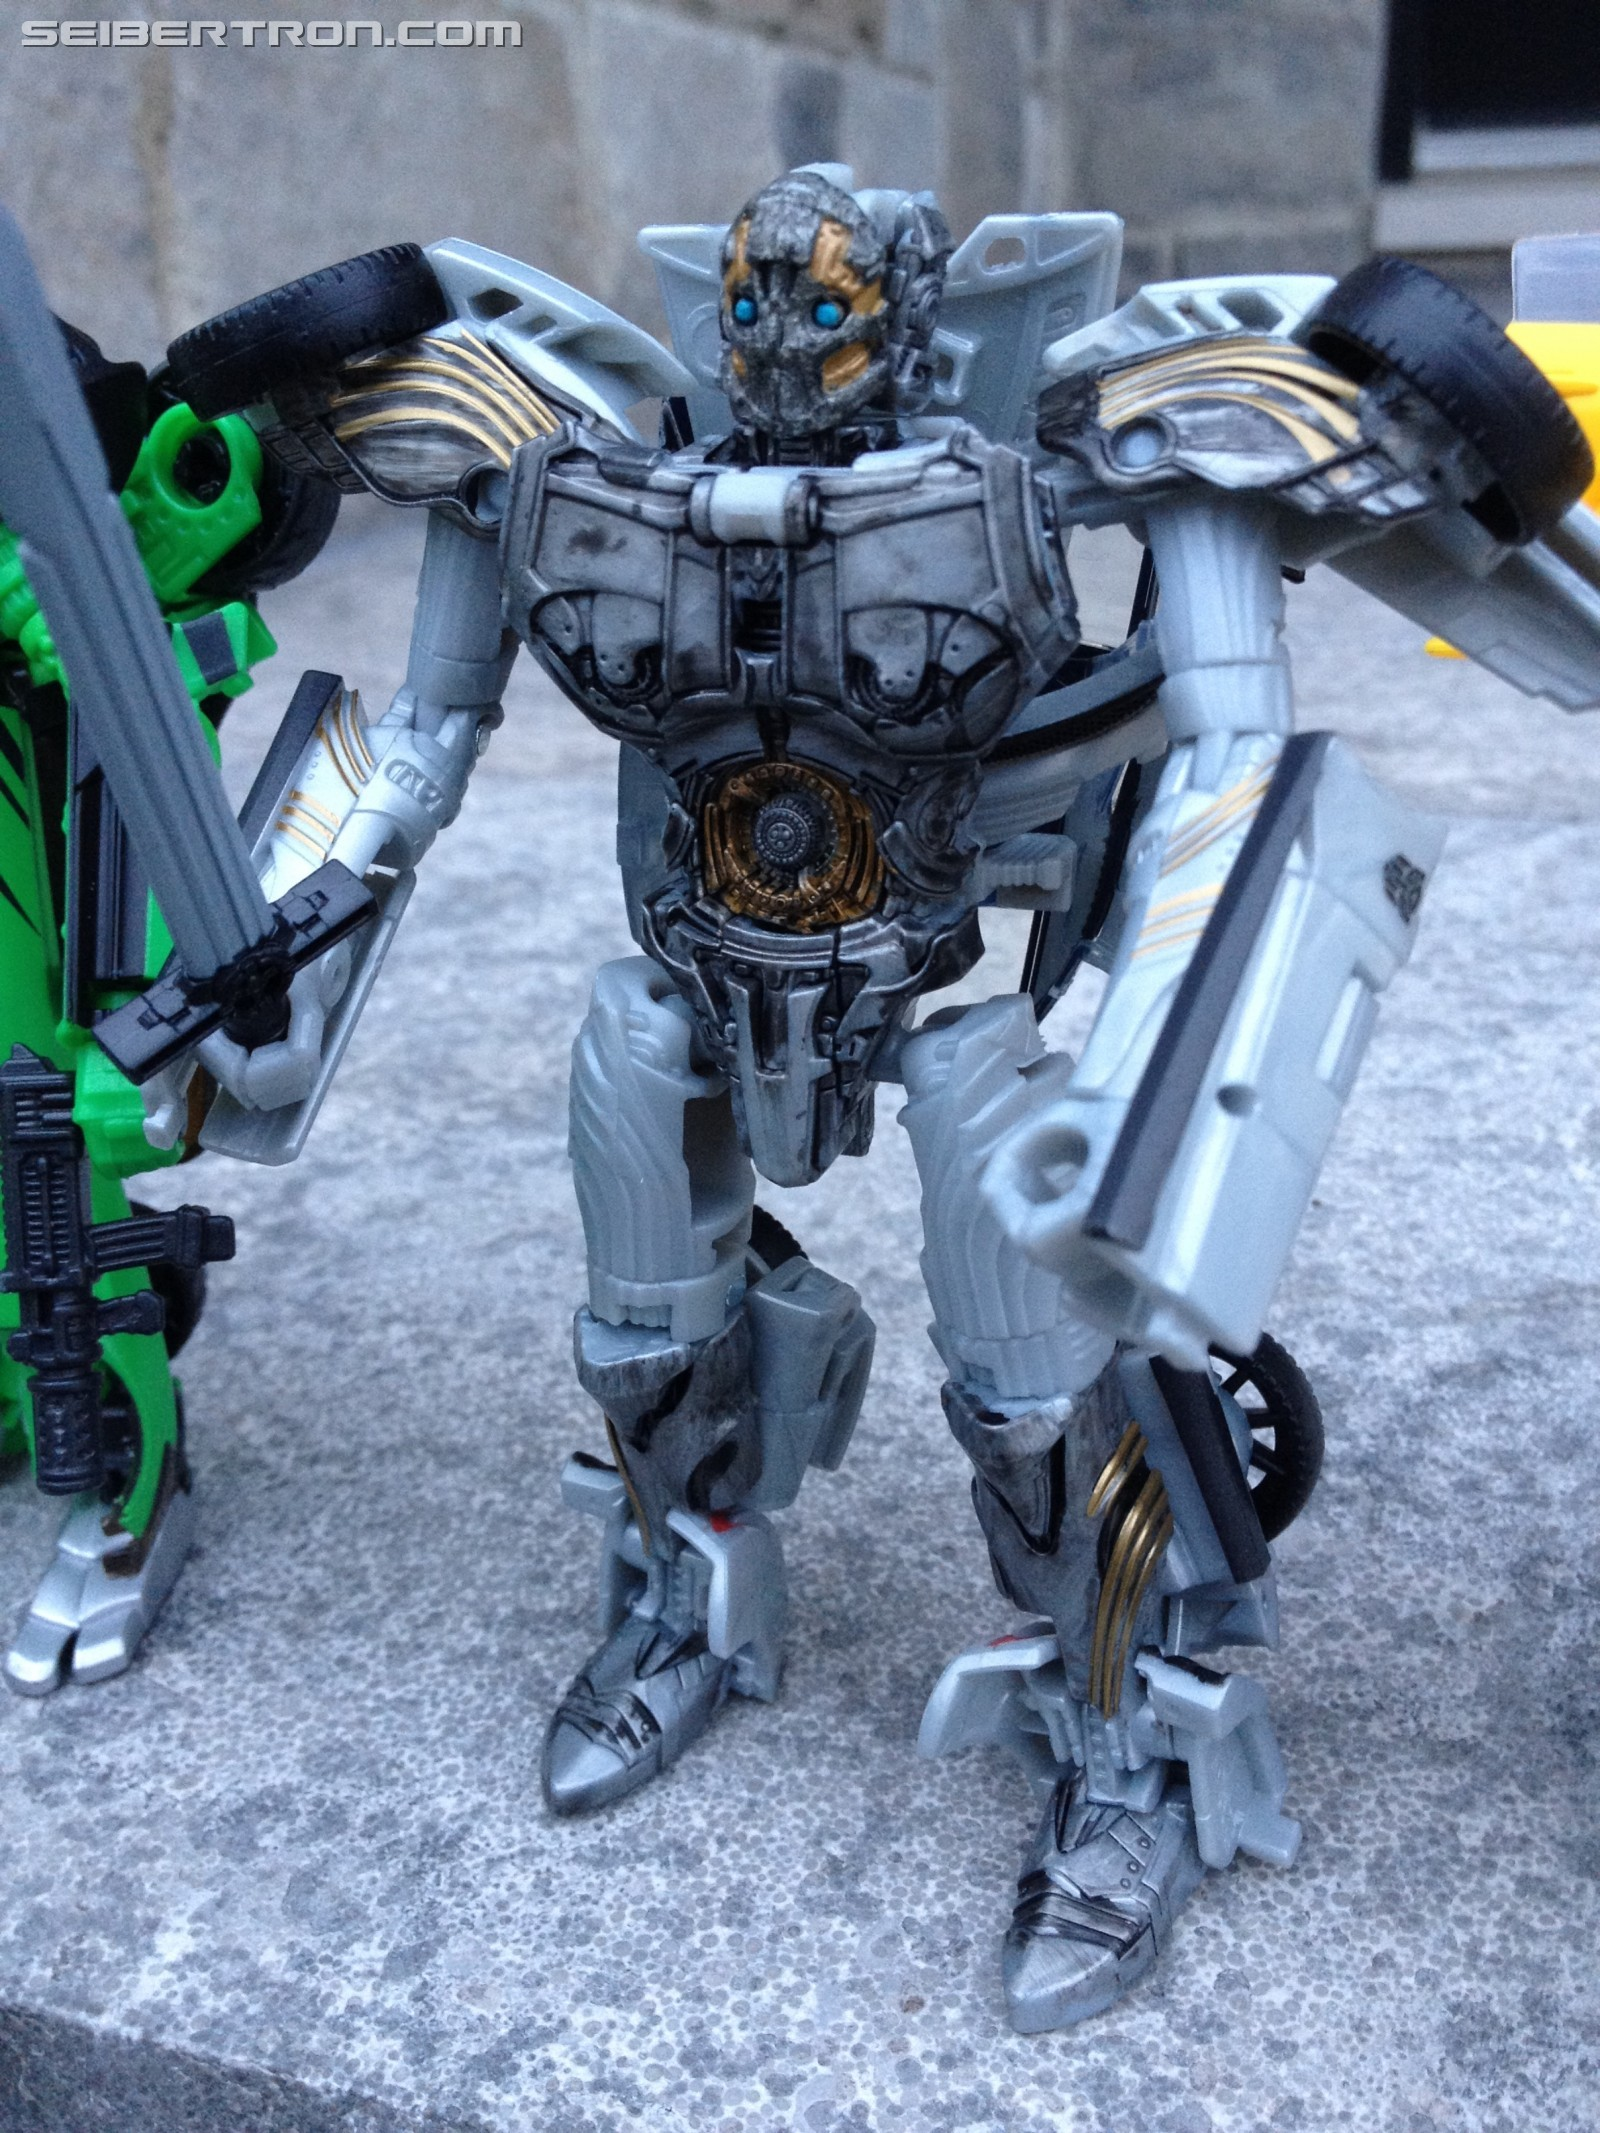 Transformers News: Pictorial Review of Deluxe Cogman from Transformers: The Last Knight